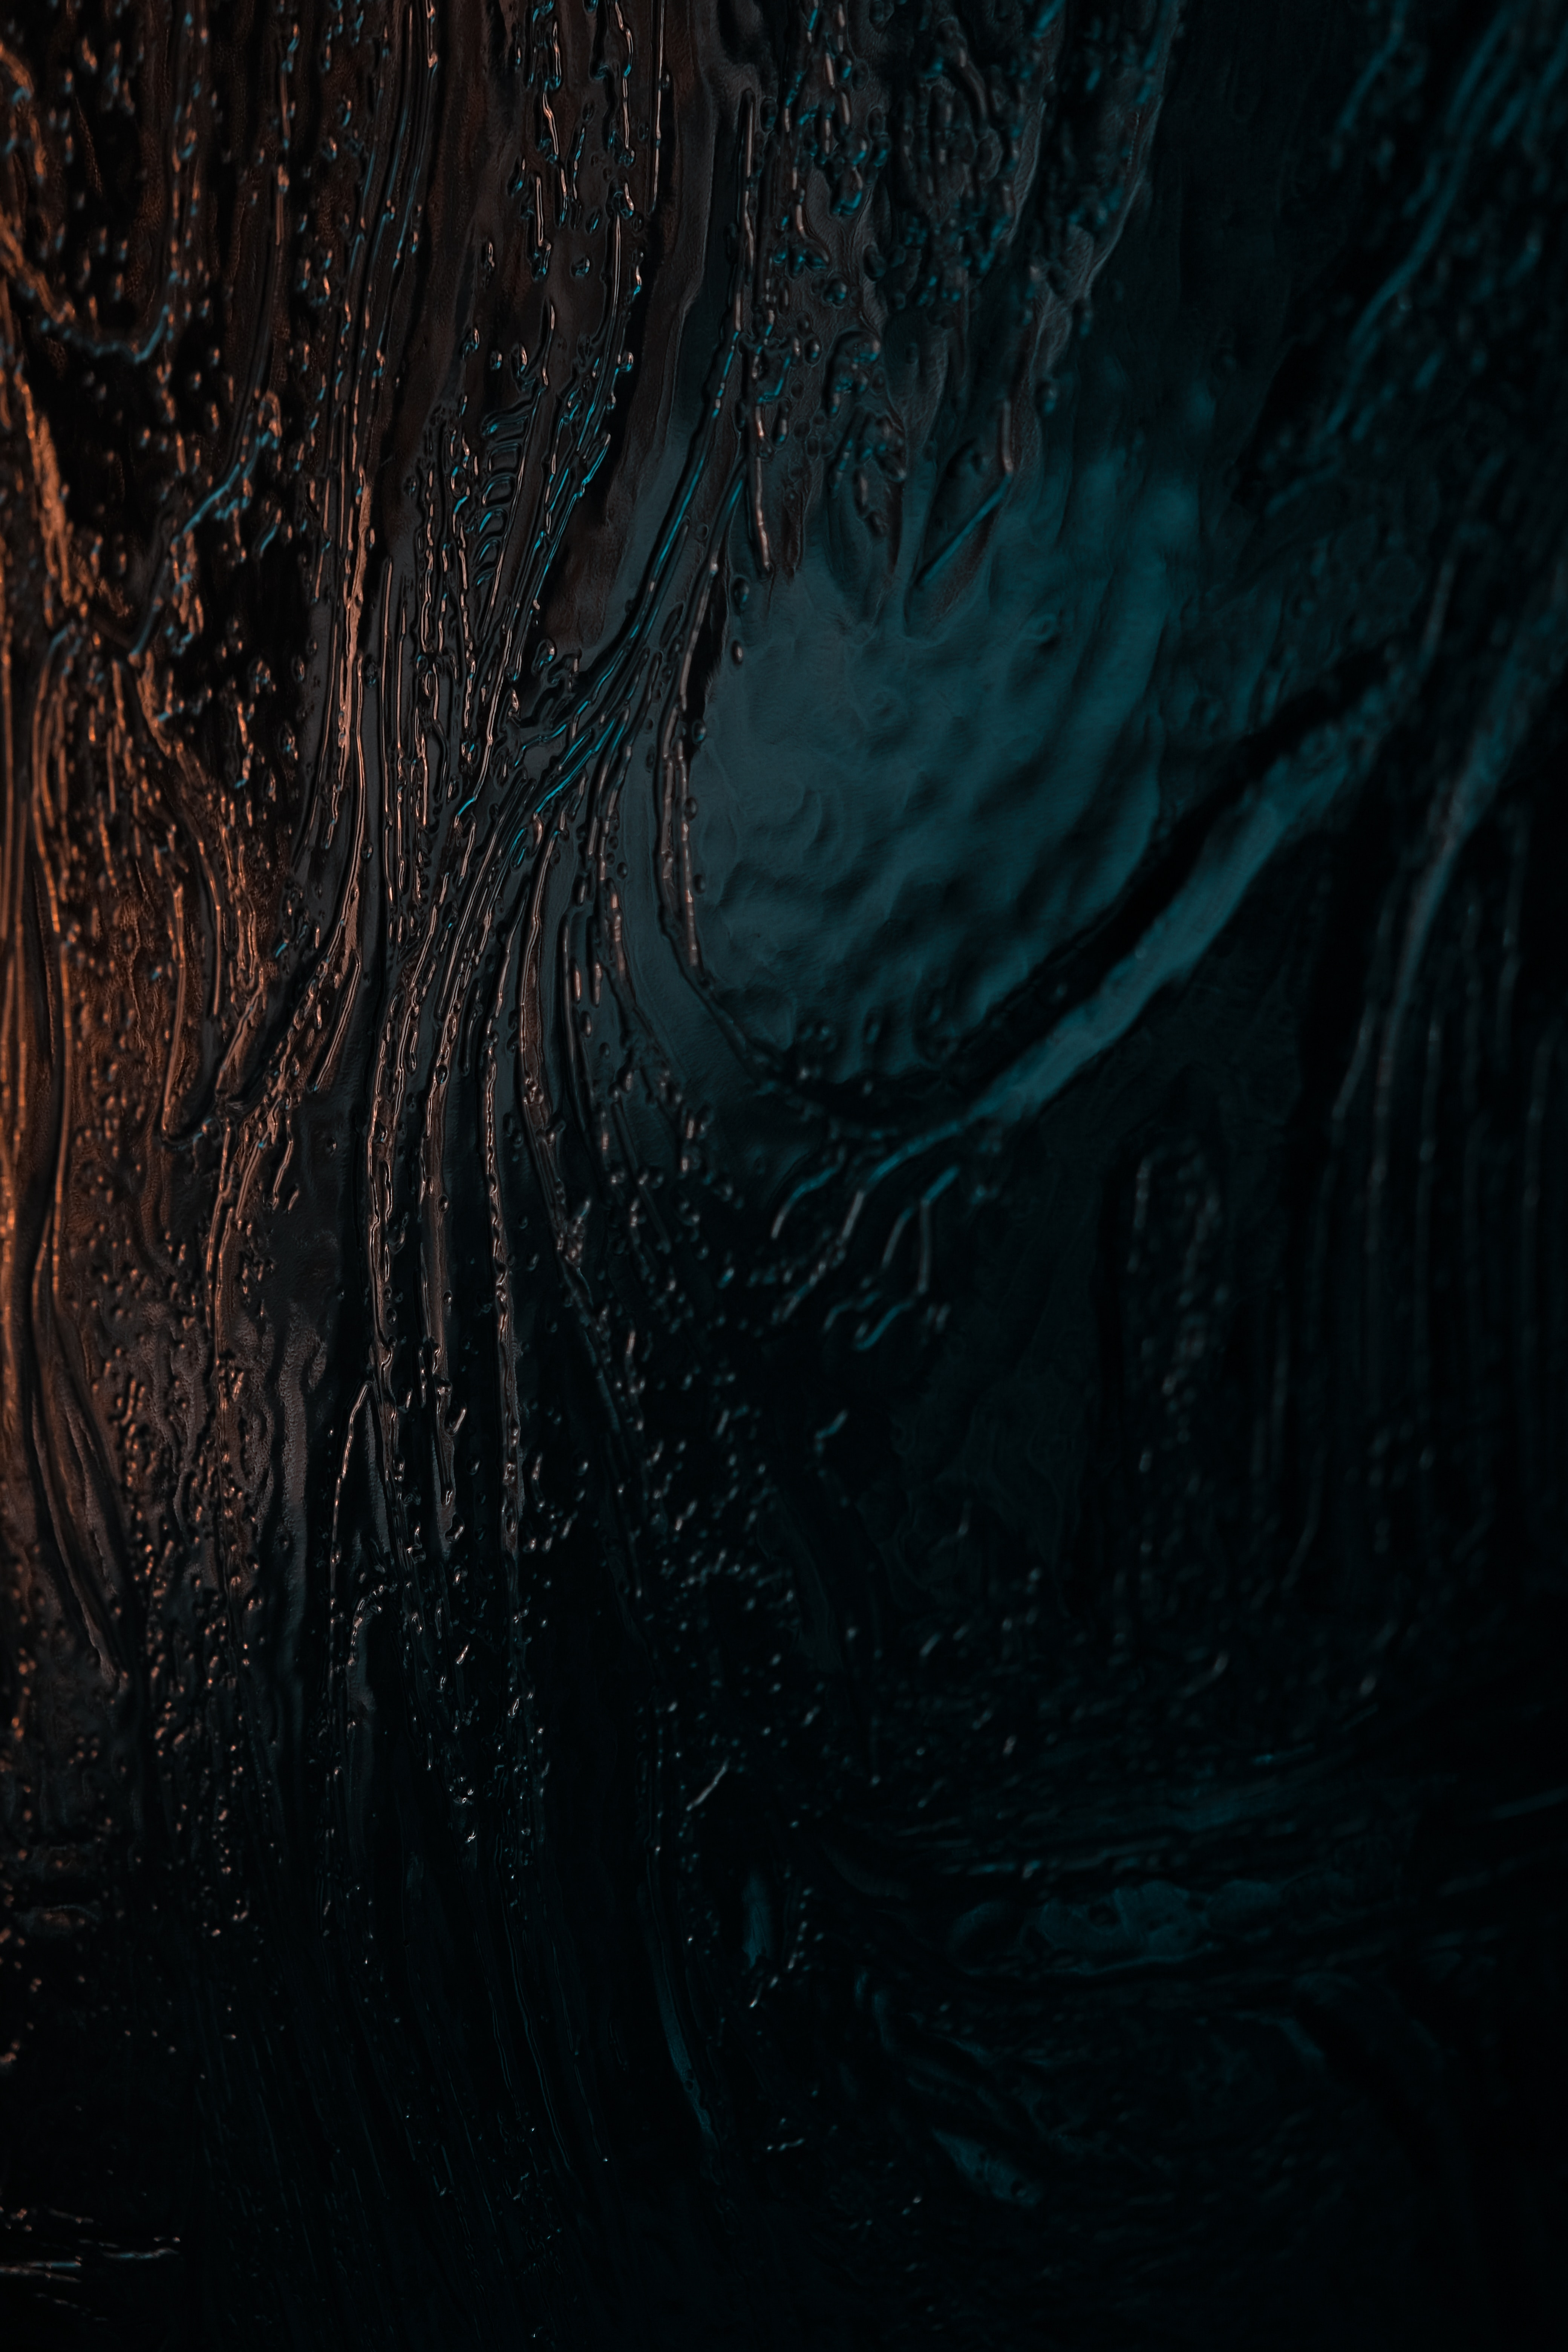 73688 download wallpaper Textures, Texture, Liquid, Surface, Dark, Wavy, Ripples, Ripple screensavers and pictures for free